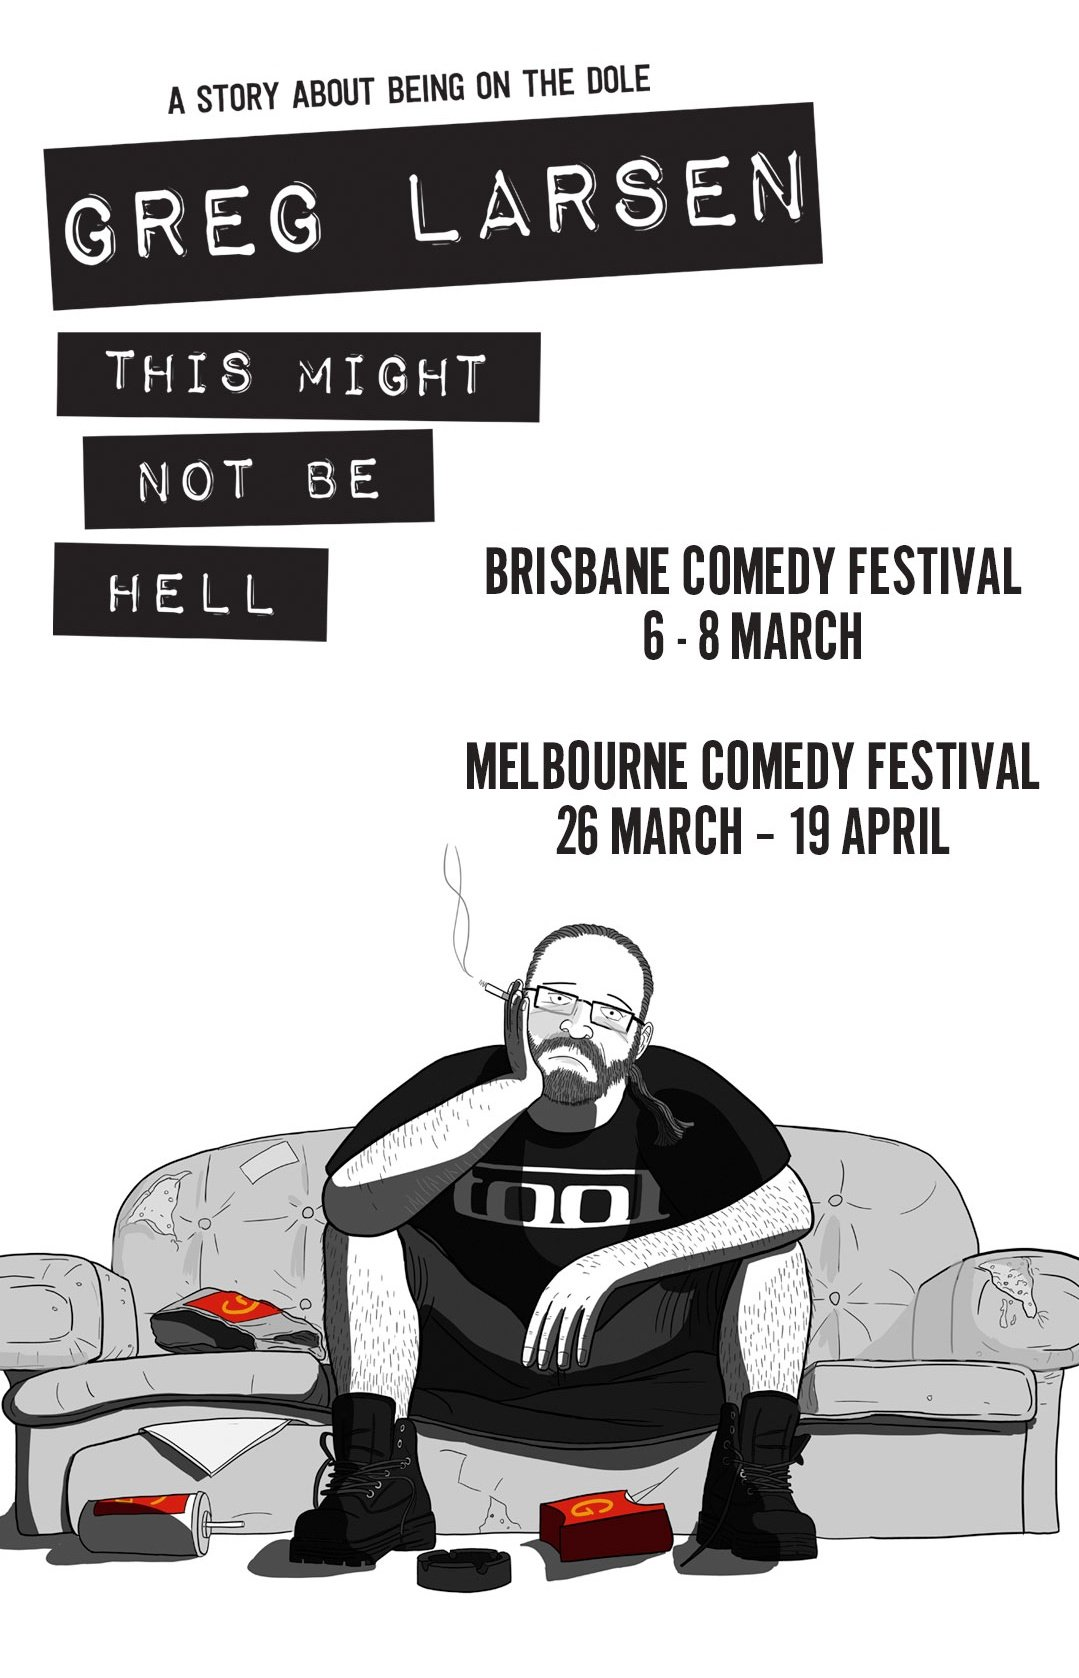 """Poster for Greg Larsen comedy show """"This Might Not Be Hell"""" at 2020 Melbourne and Brisbane Comedy Festivals."""